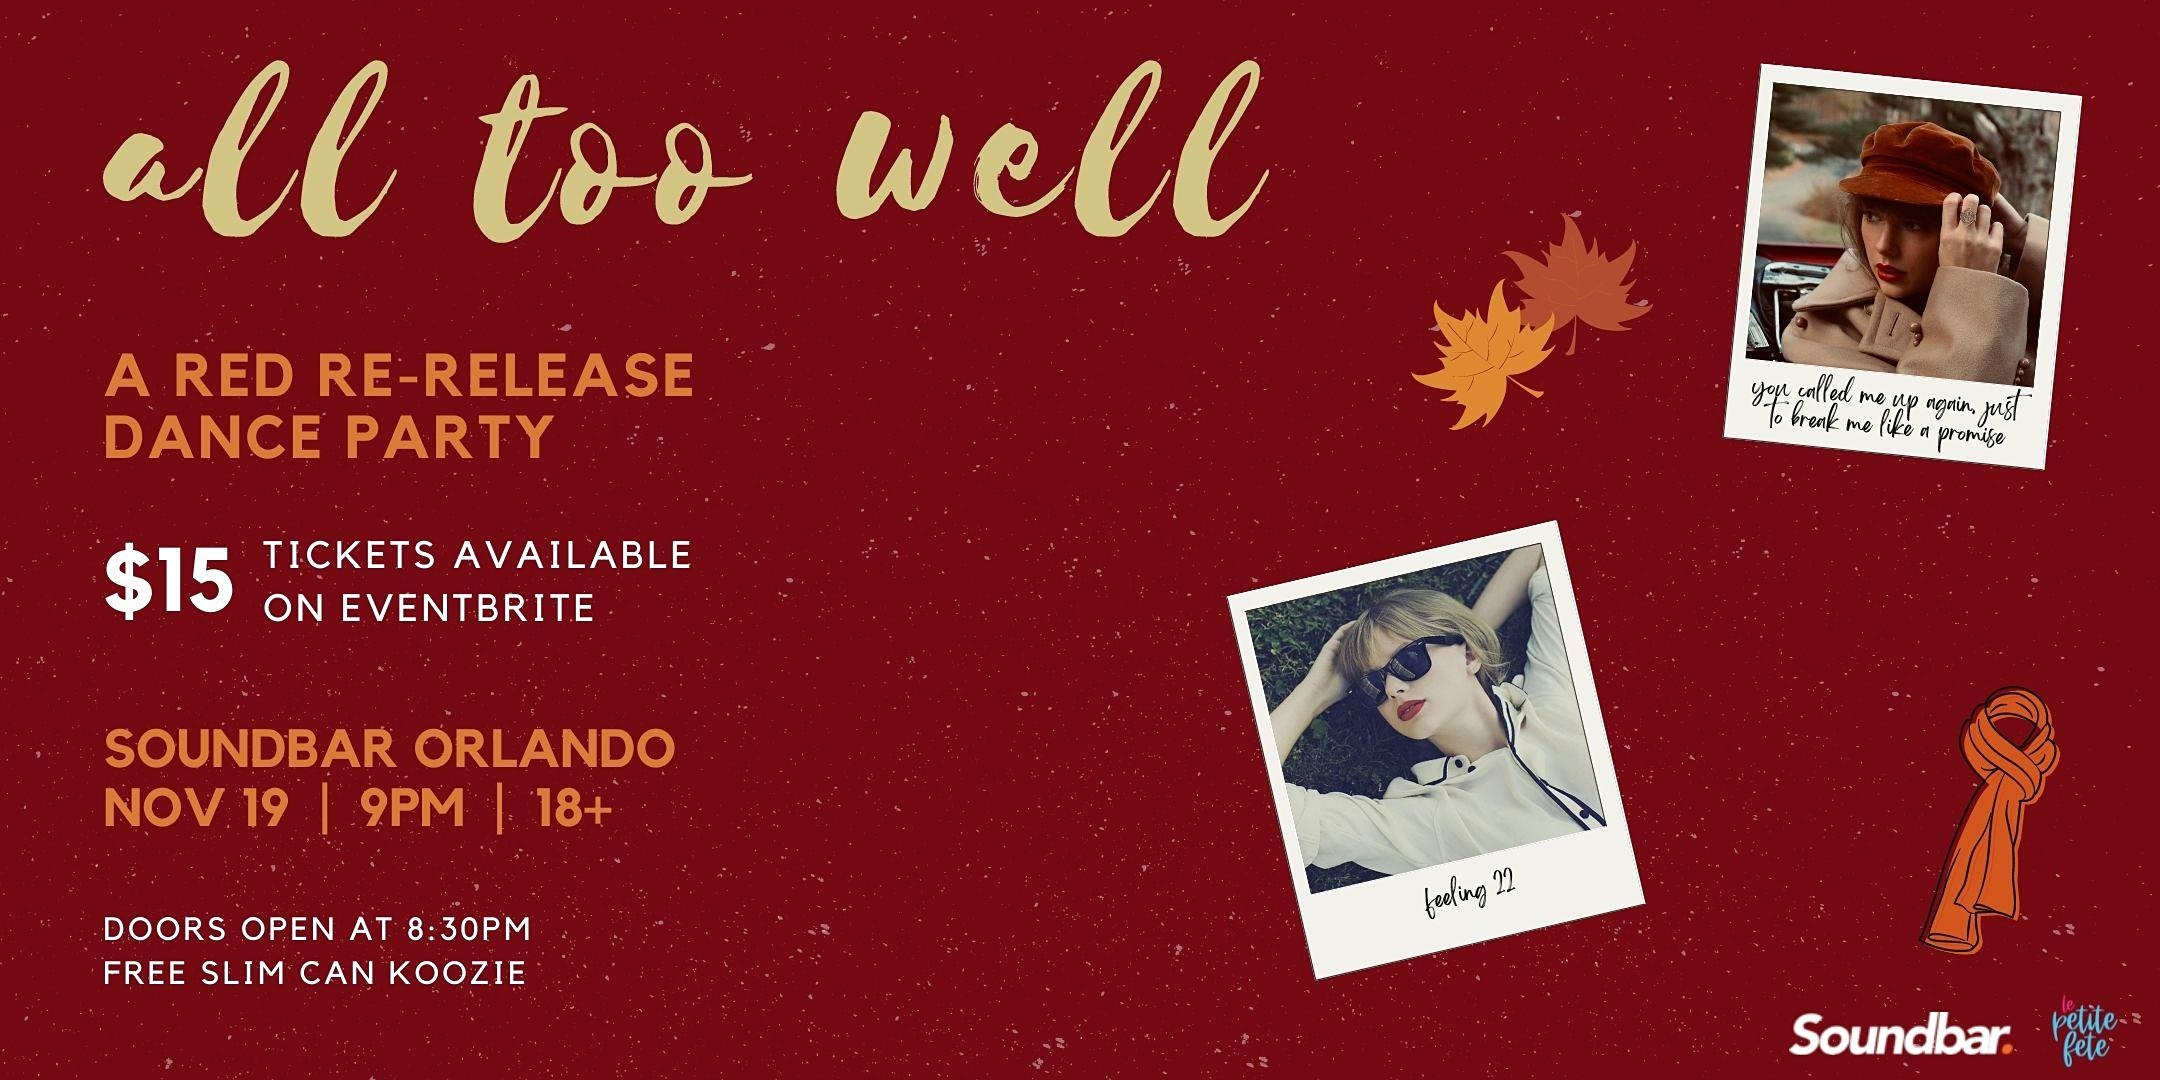 All Too Well: Red Re-Release Dance Party